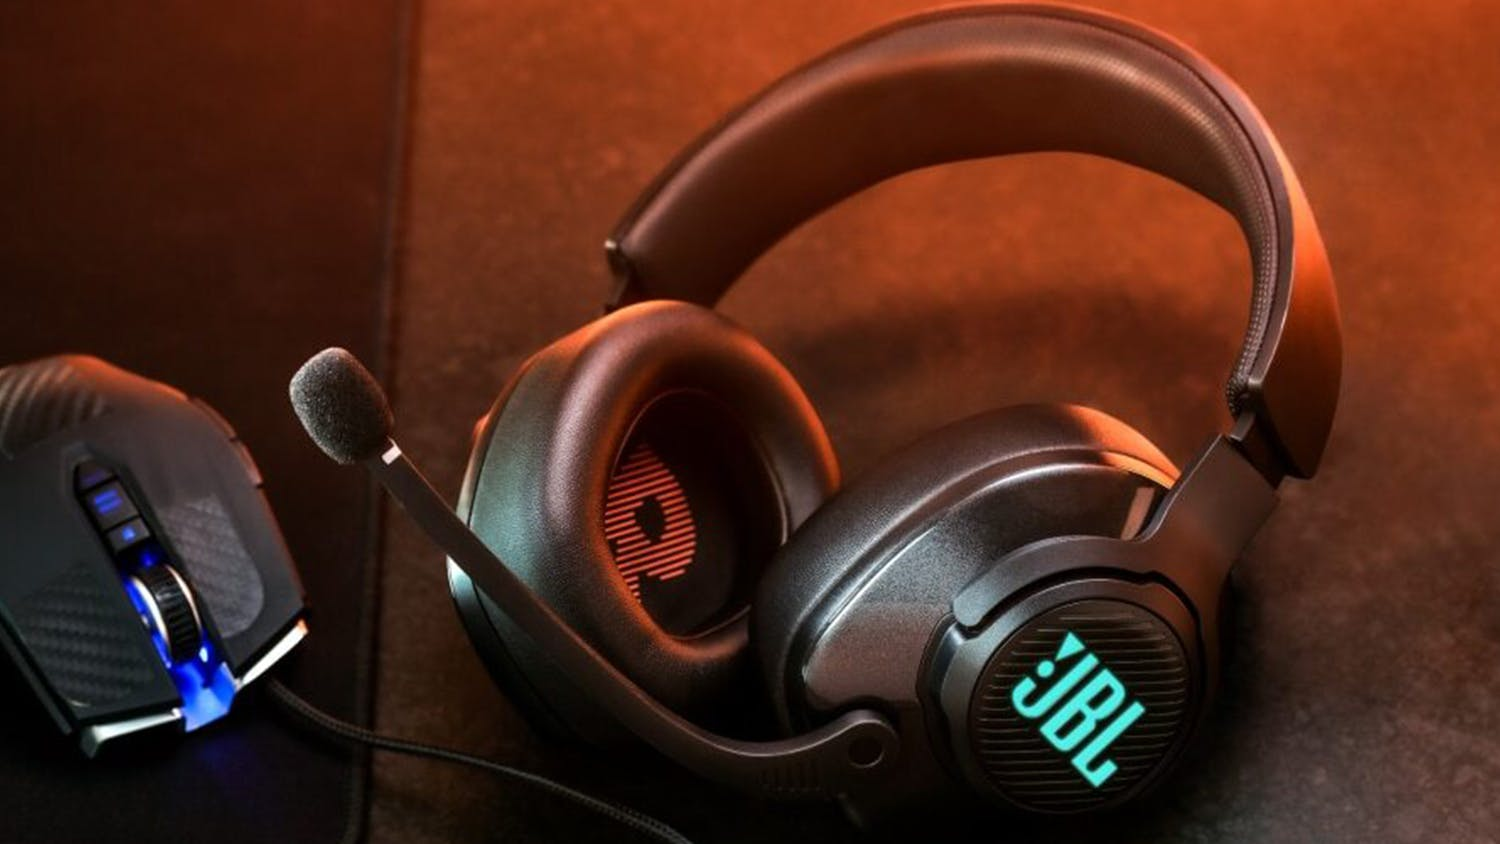 JBL Quantum 400 Over-Ear Gaming Headset - Black